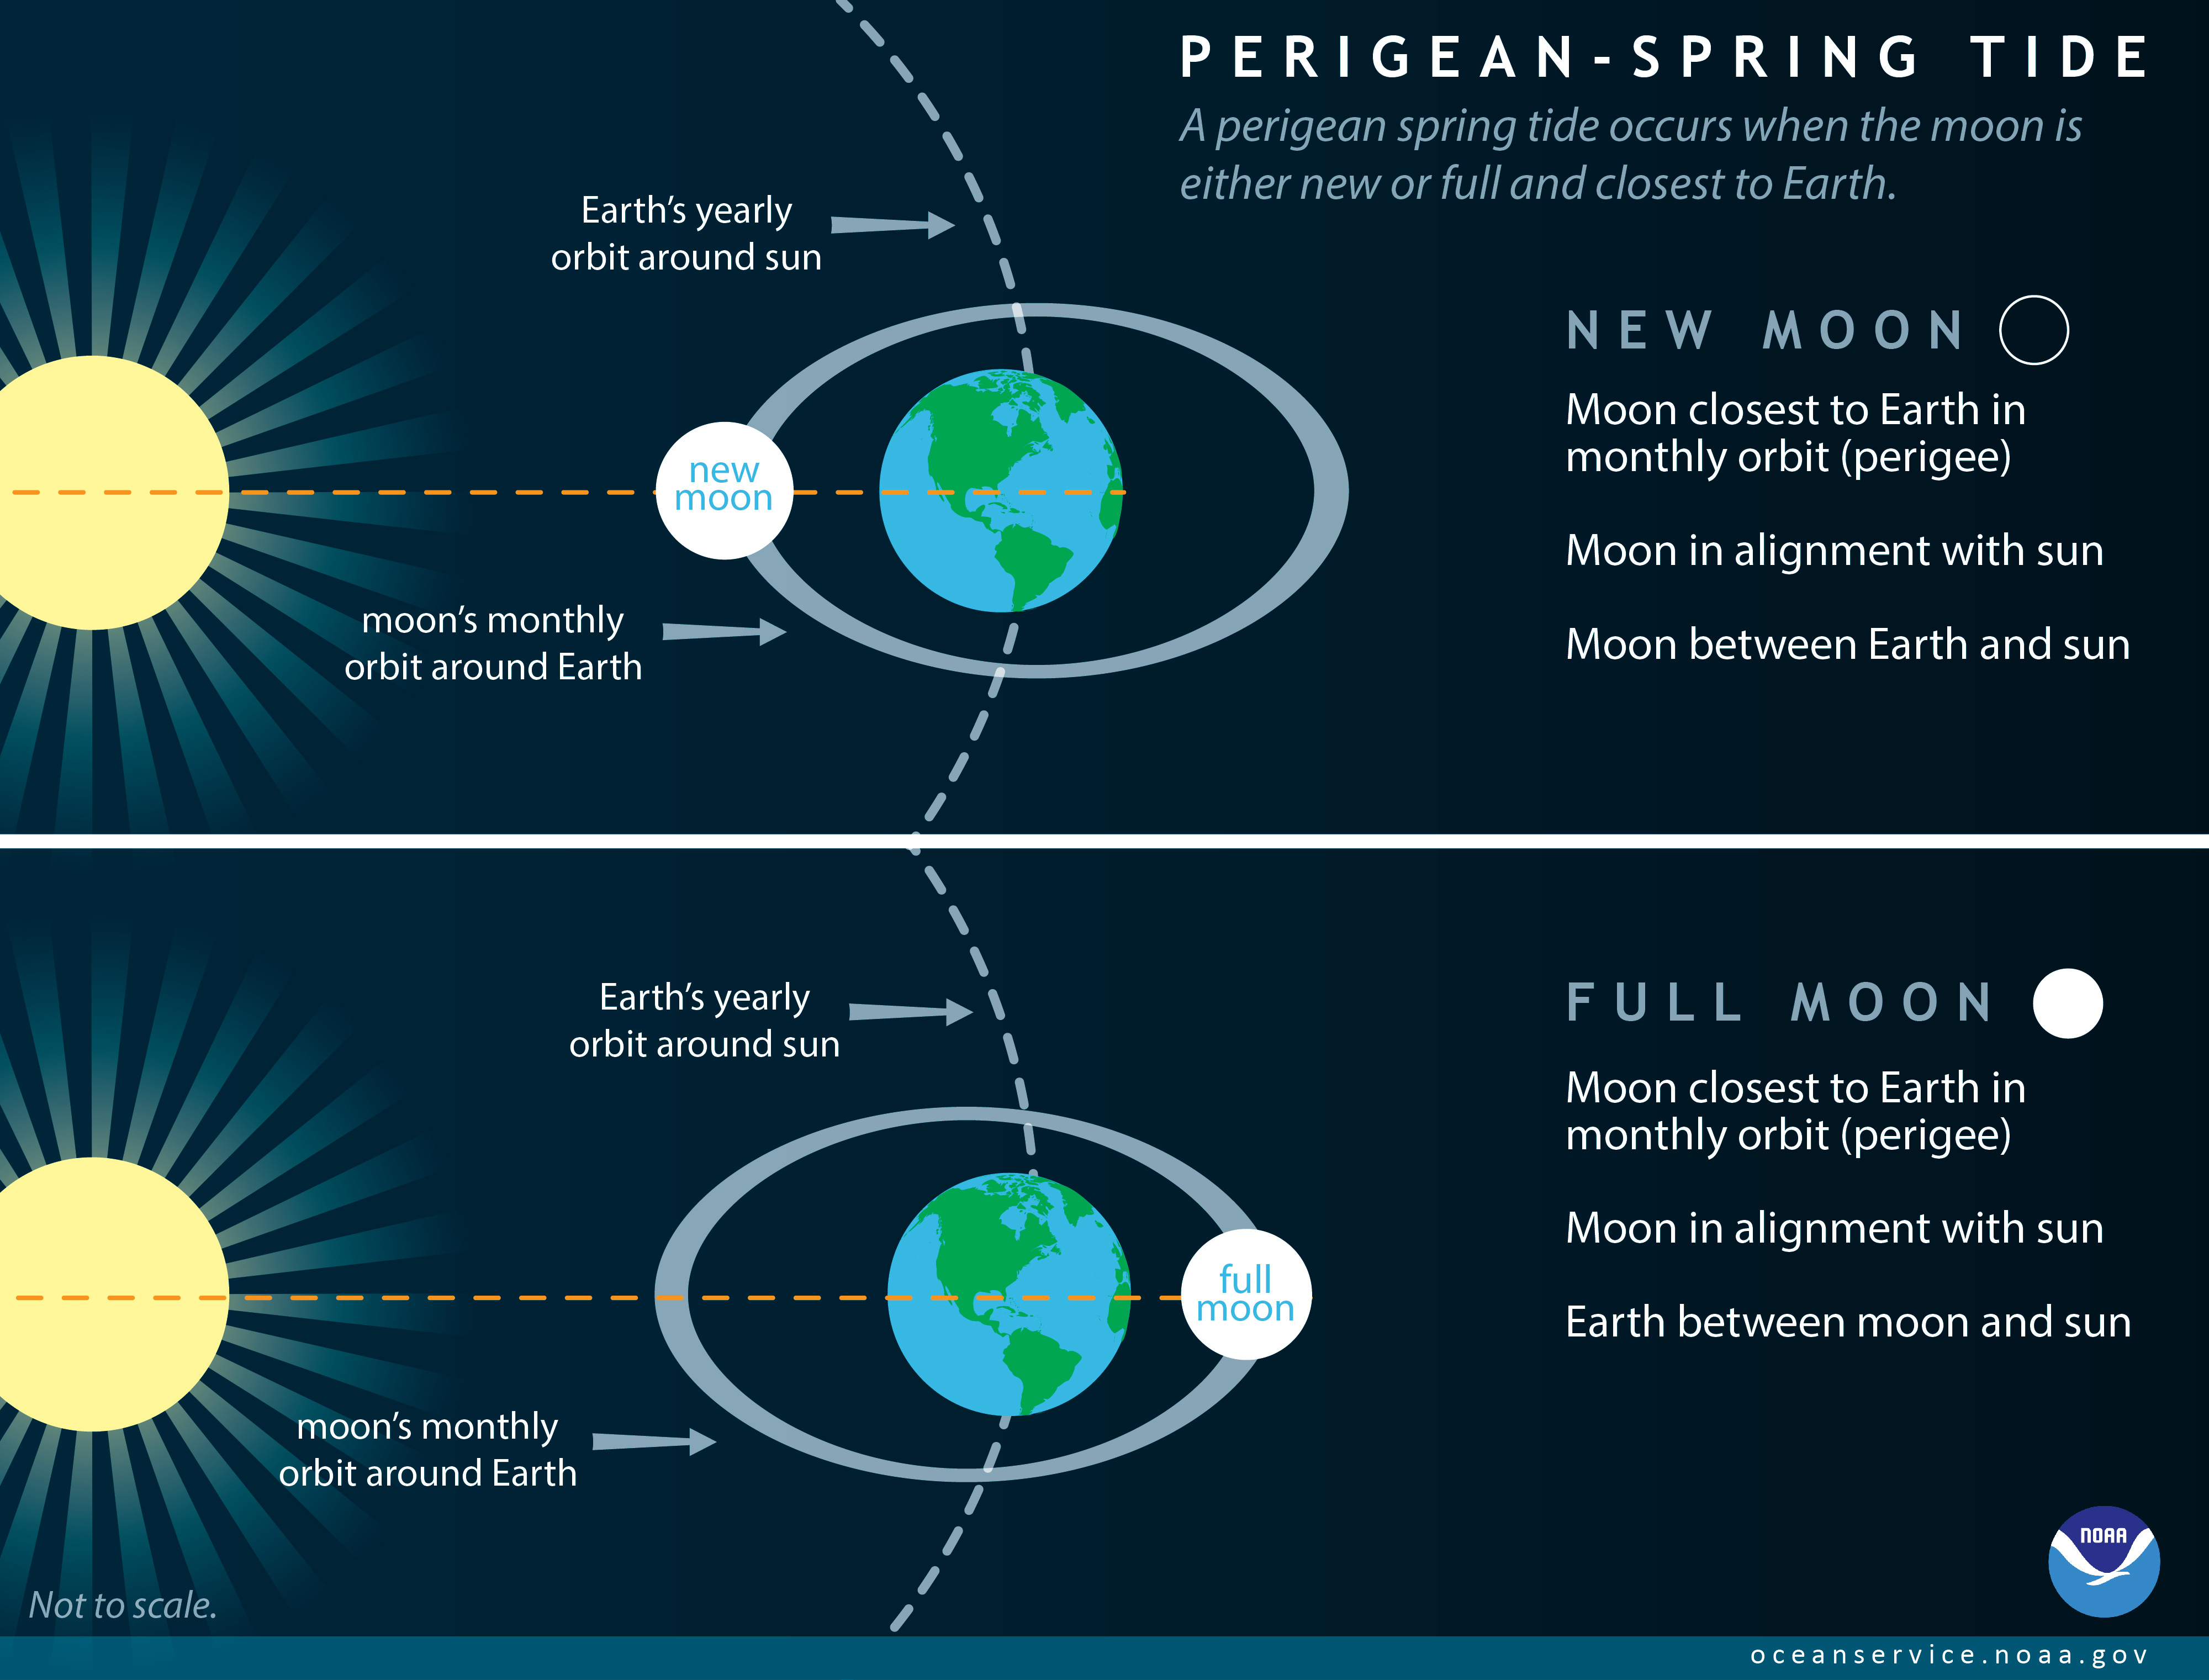 What is a perigean spring tide a perigean spring tide occurs when the moon is either new or full and closest to earth pooptronica Gallery